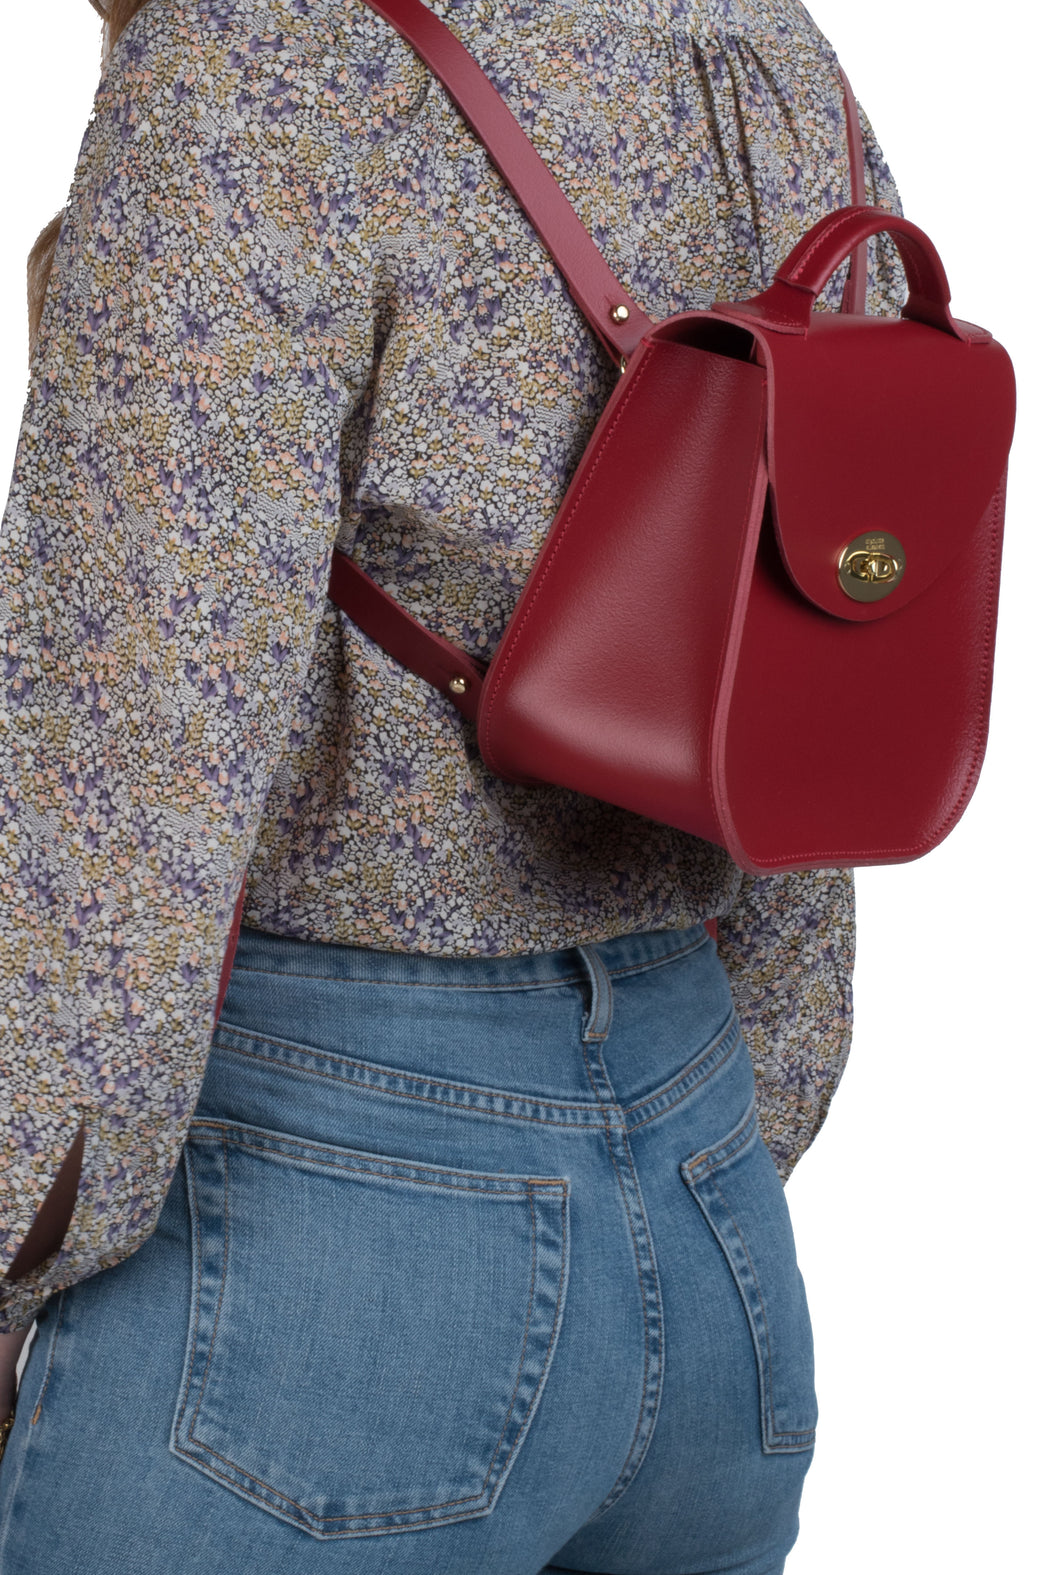 Pre-Order The Red Bloomsbury Backpack (Non-Personalised)